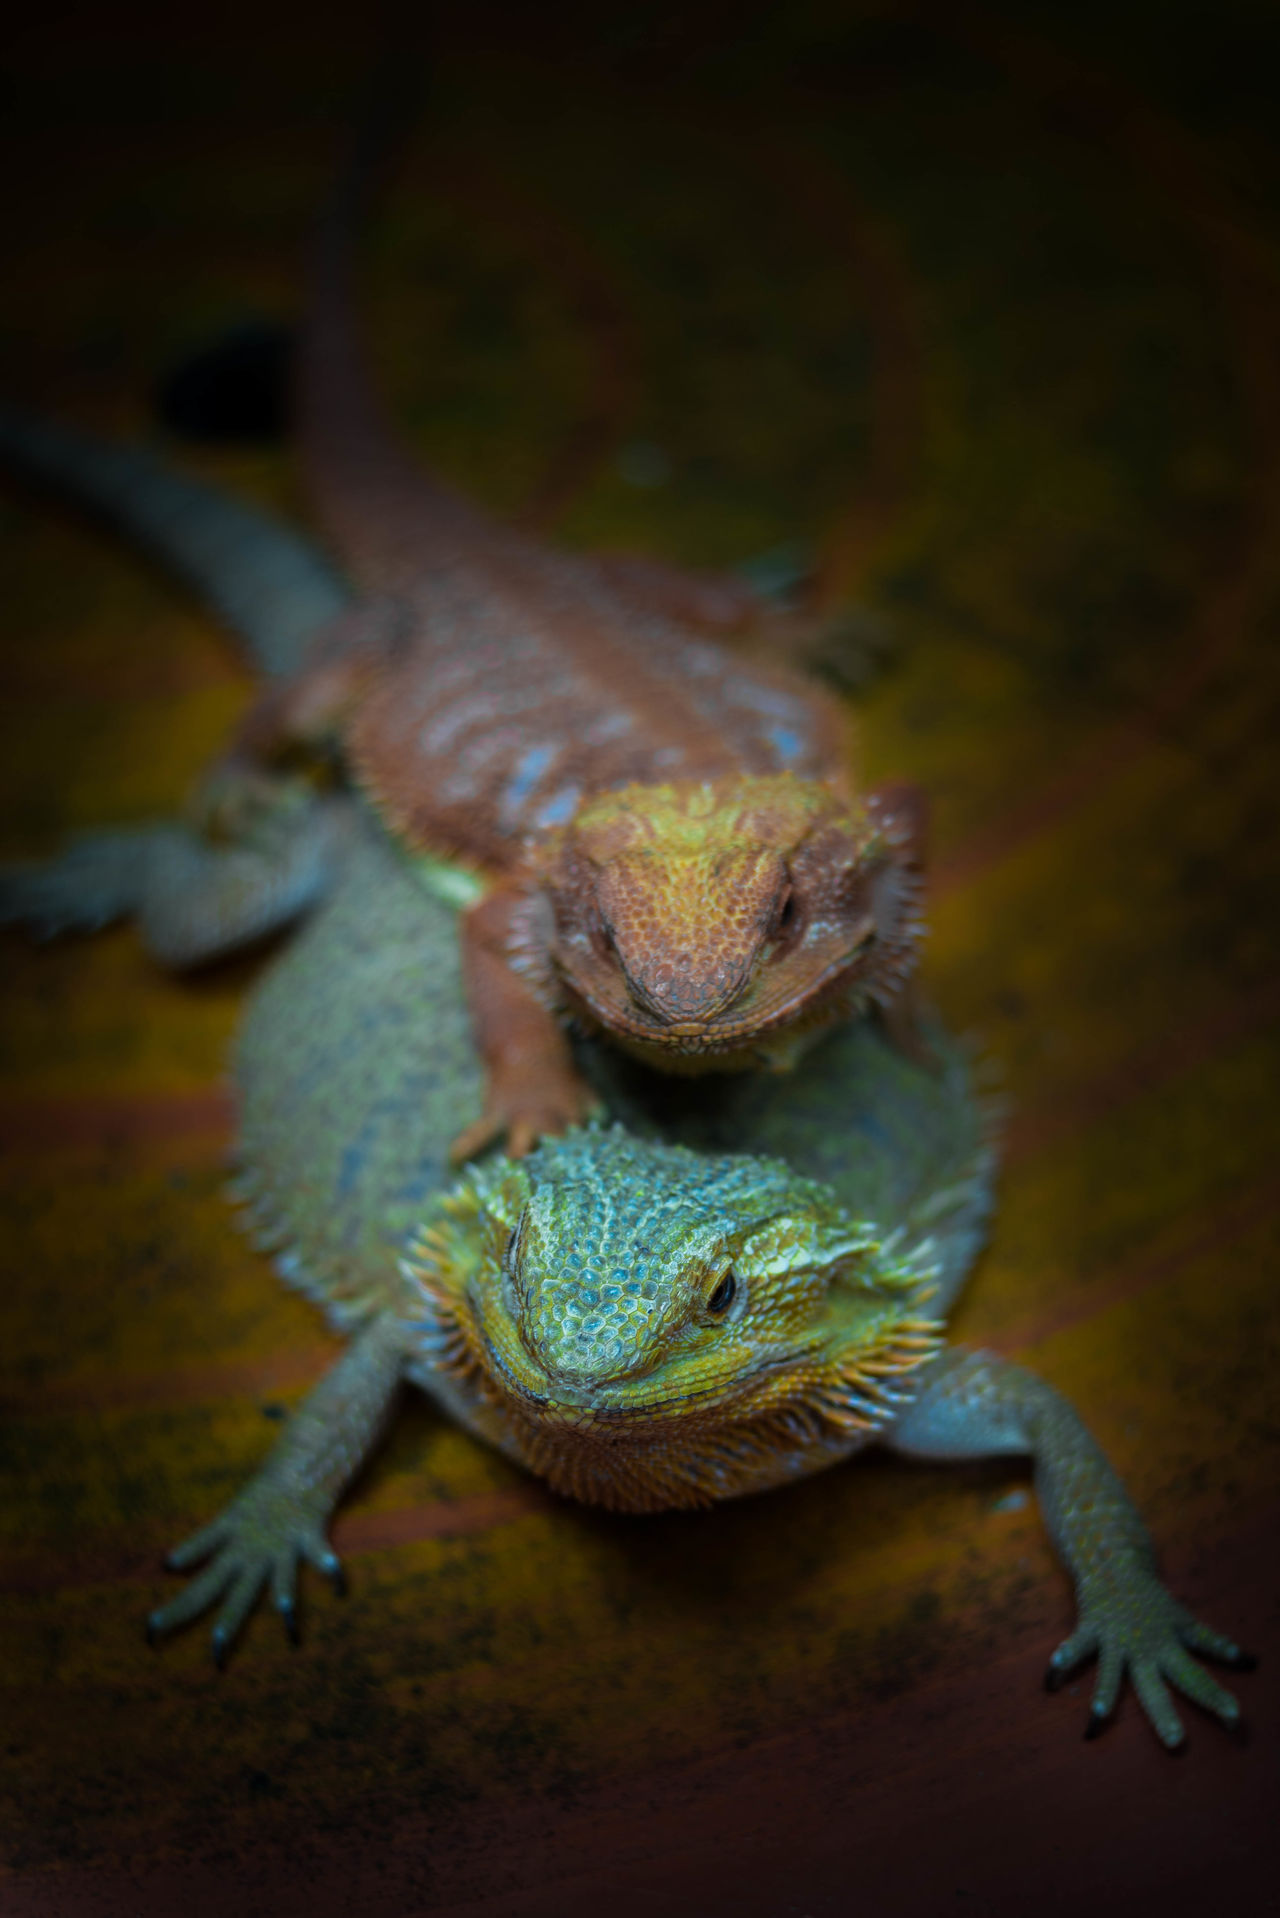 dragon lizard Animal Themes Chameleon Close-up Day Dragon Lizard Indoors  Lizard Lizard Nature Nature No People One Animal Pet Pet Photography  Reptile